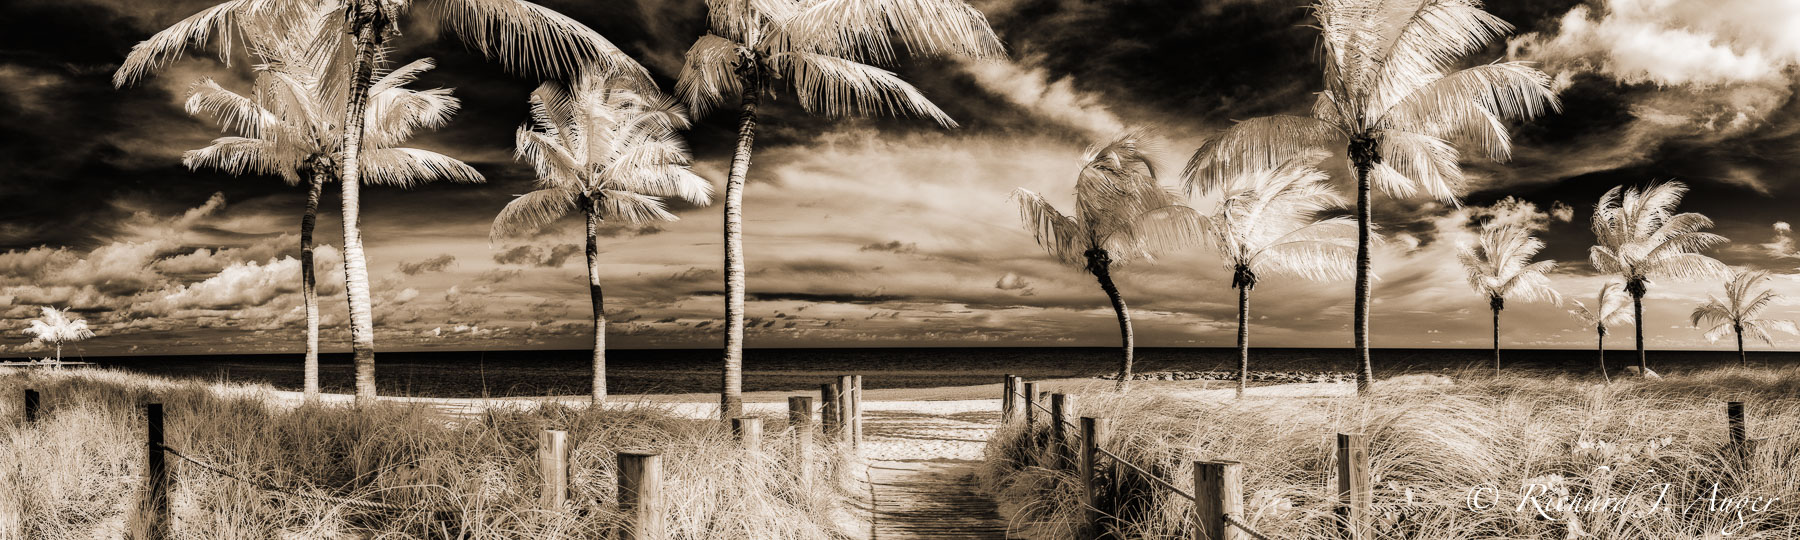 Key West, Florida, Smathers Beach, Monochrome, Sepia, Infared, Photography, Landscape, Richard Auger, sepia tone, black and white, panorama